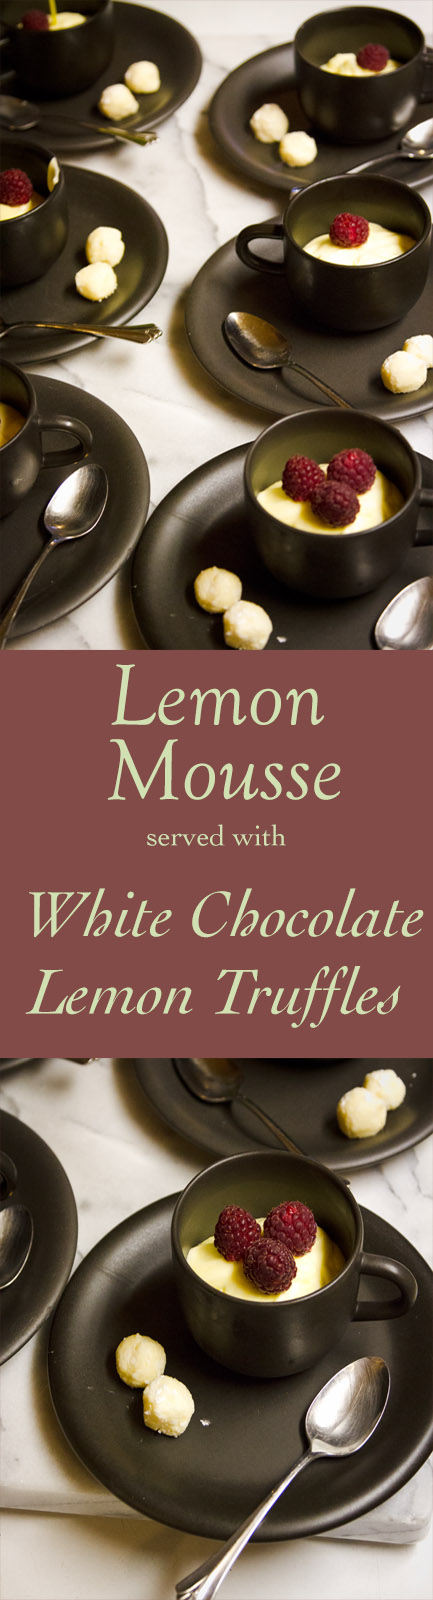 Lemon Mousse with raspberries and White Chocolate Lemon Truffles